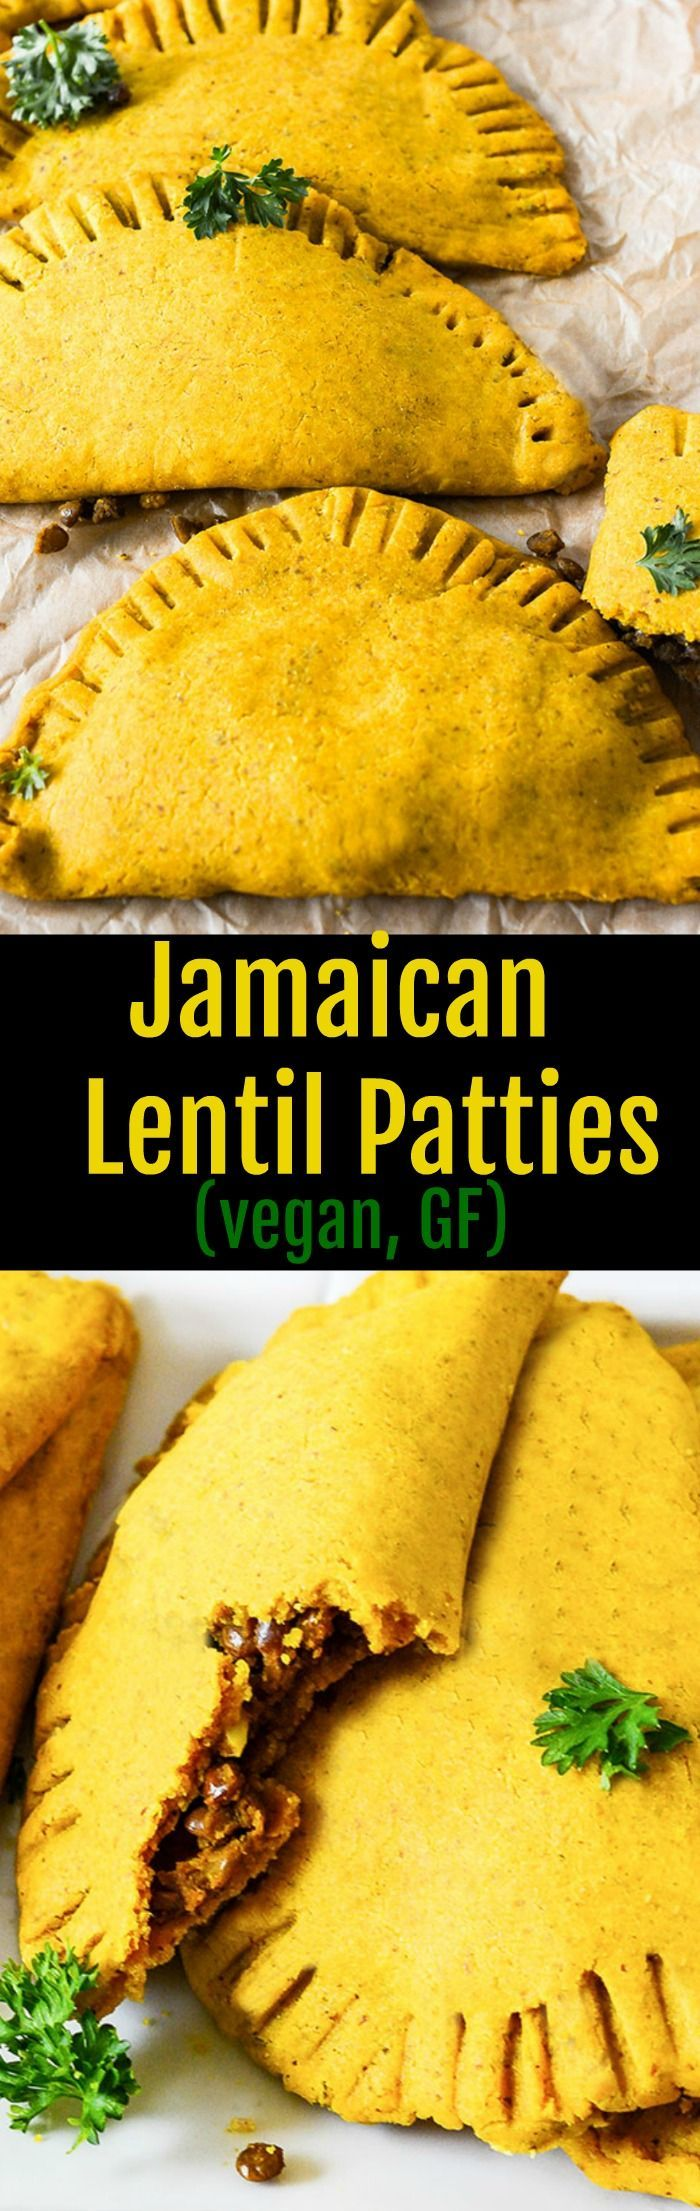 Jamaican Lentil Patties Gluten Free Vegan